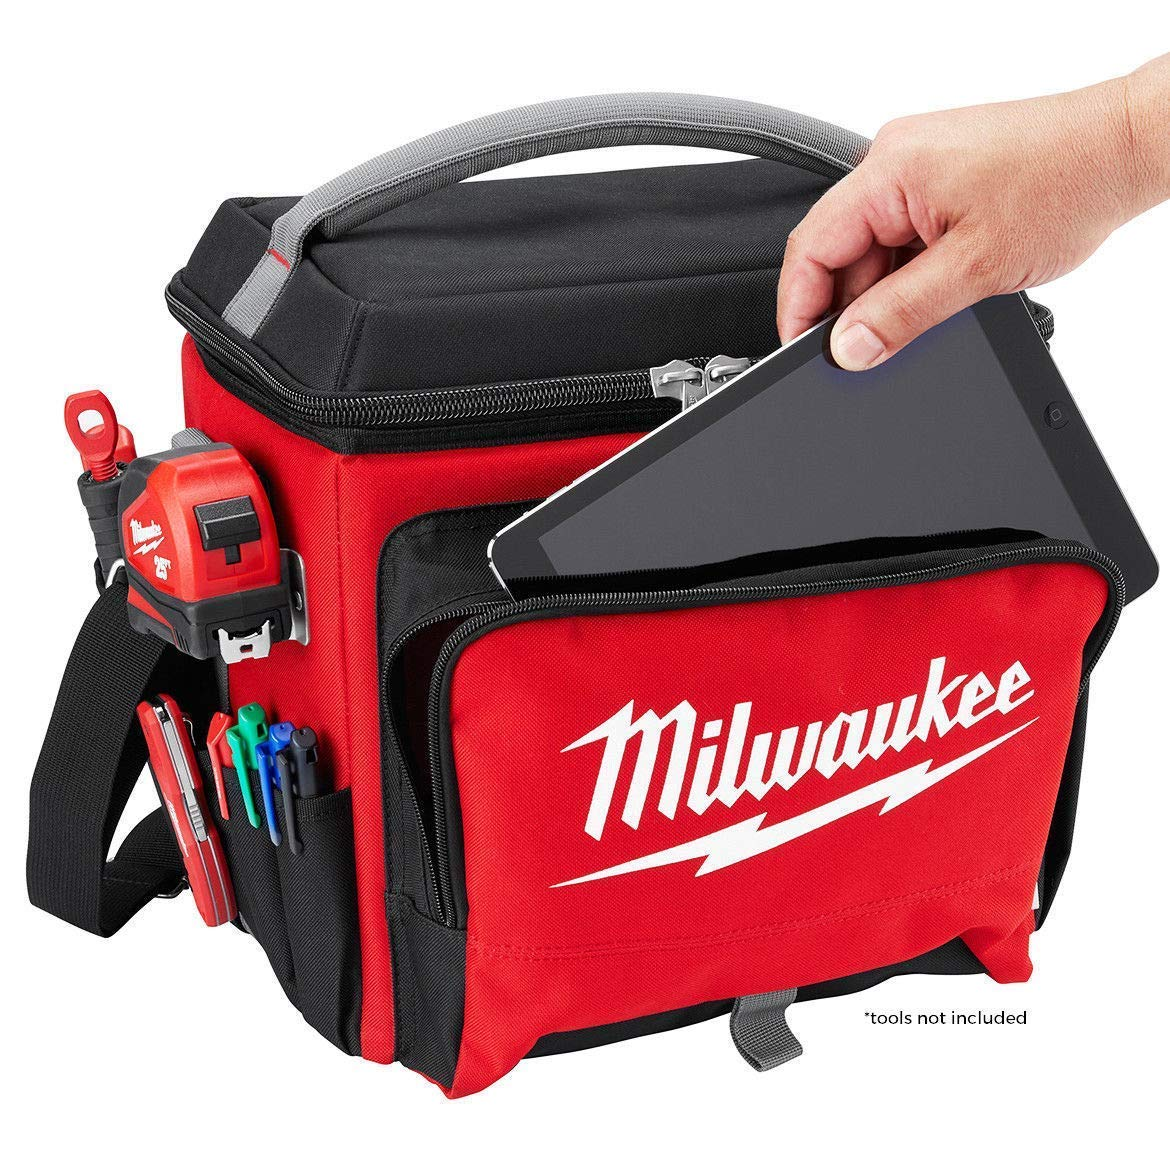 color rojo Enfriador de trabajo Milwaukee 932464835